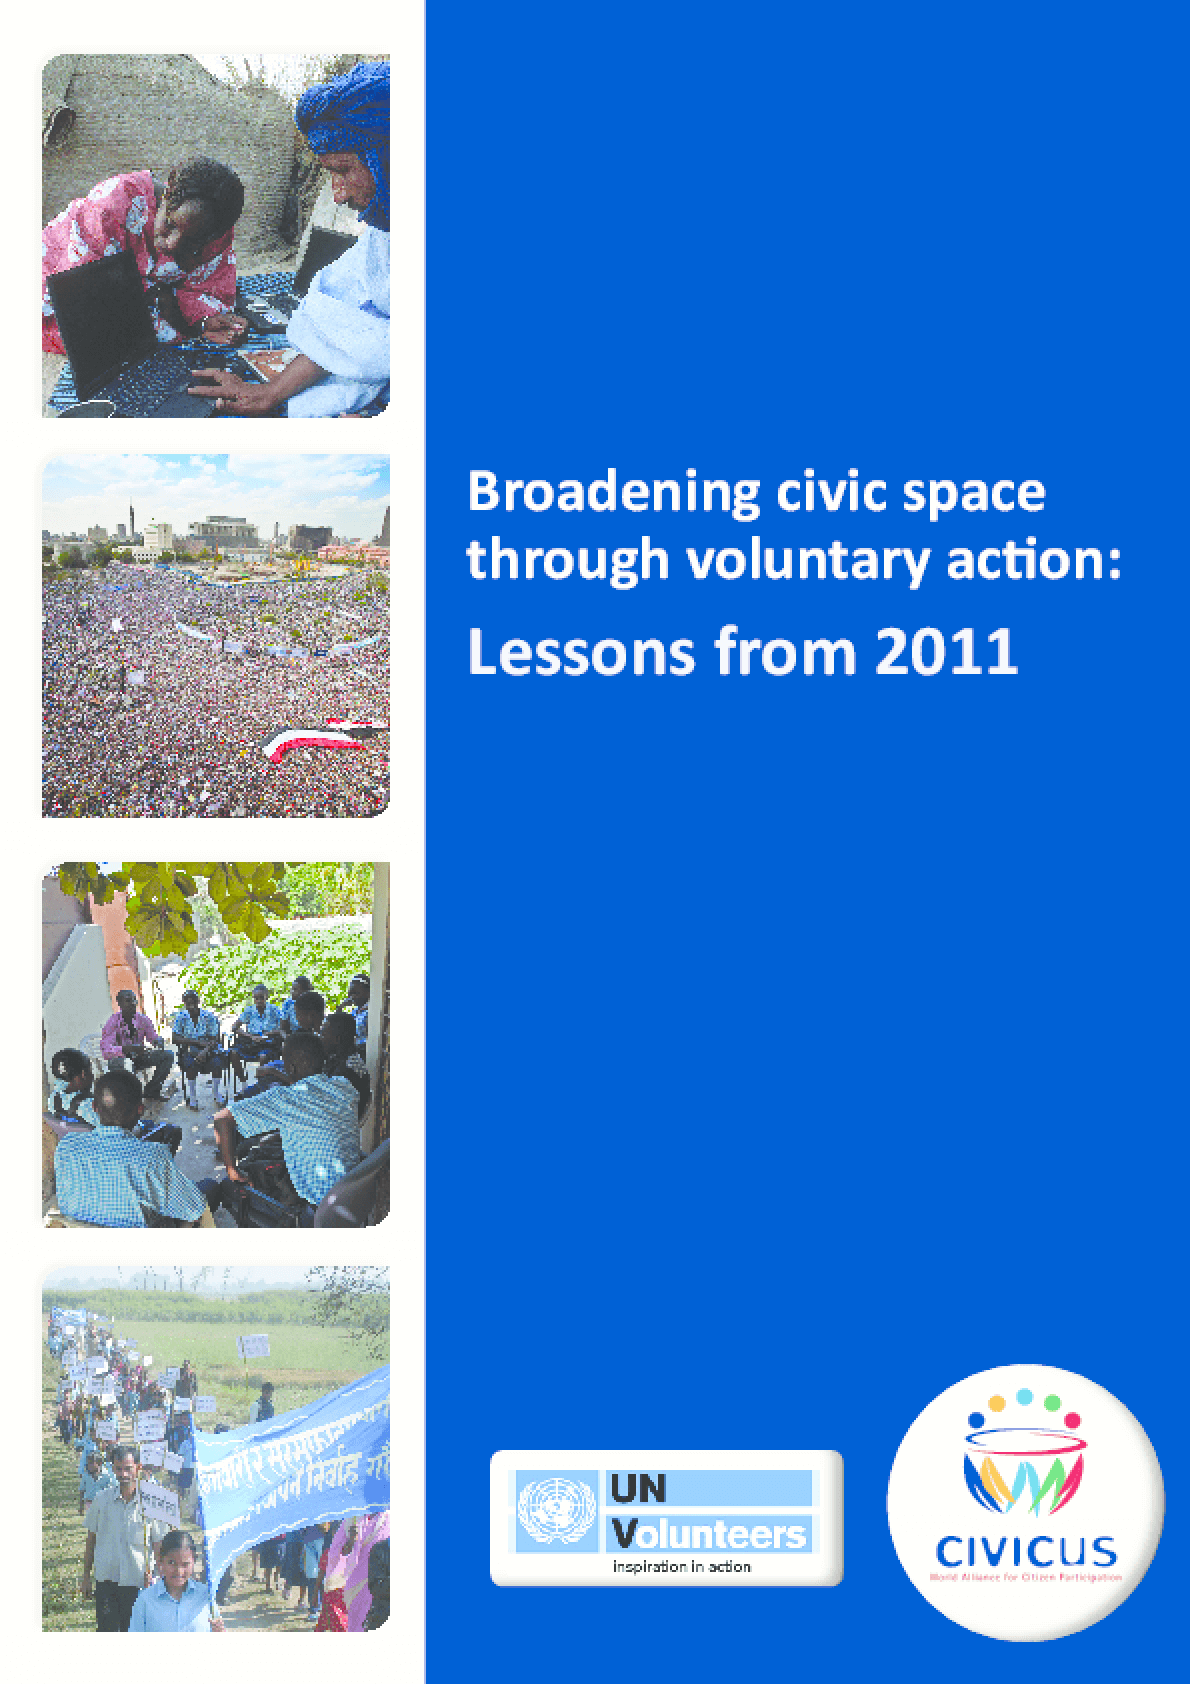 Broadening Civic Space Through Voluntary Action Lessons from 2011